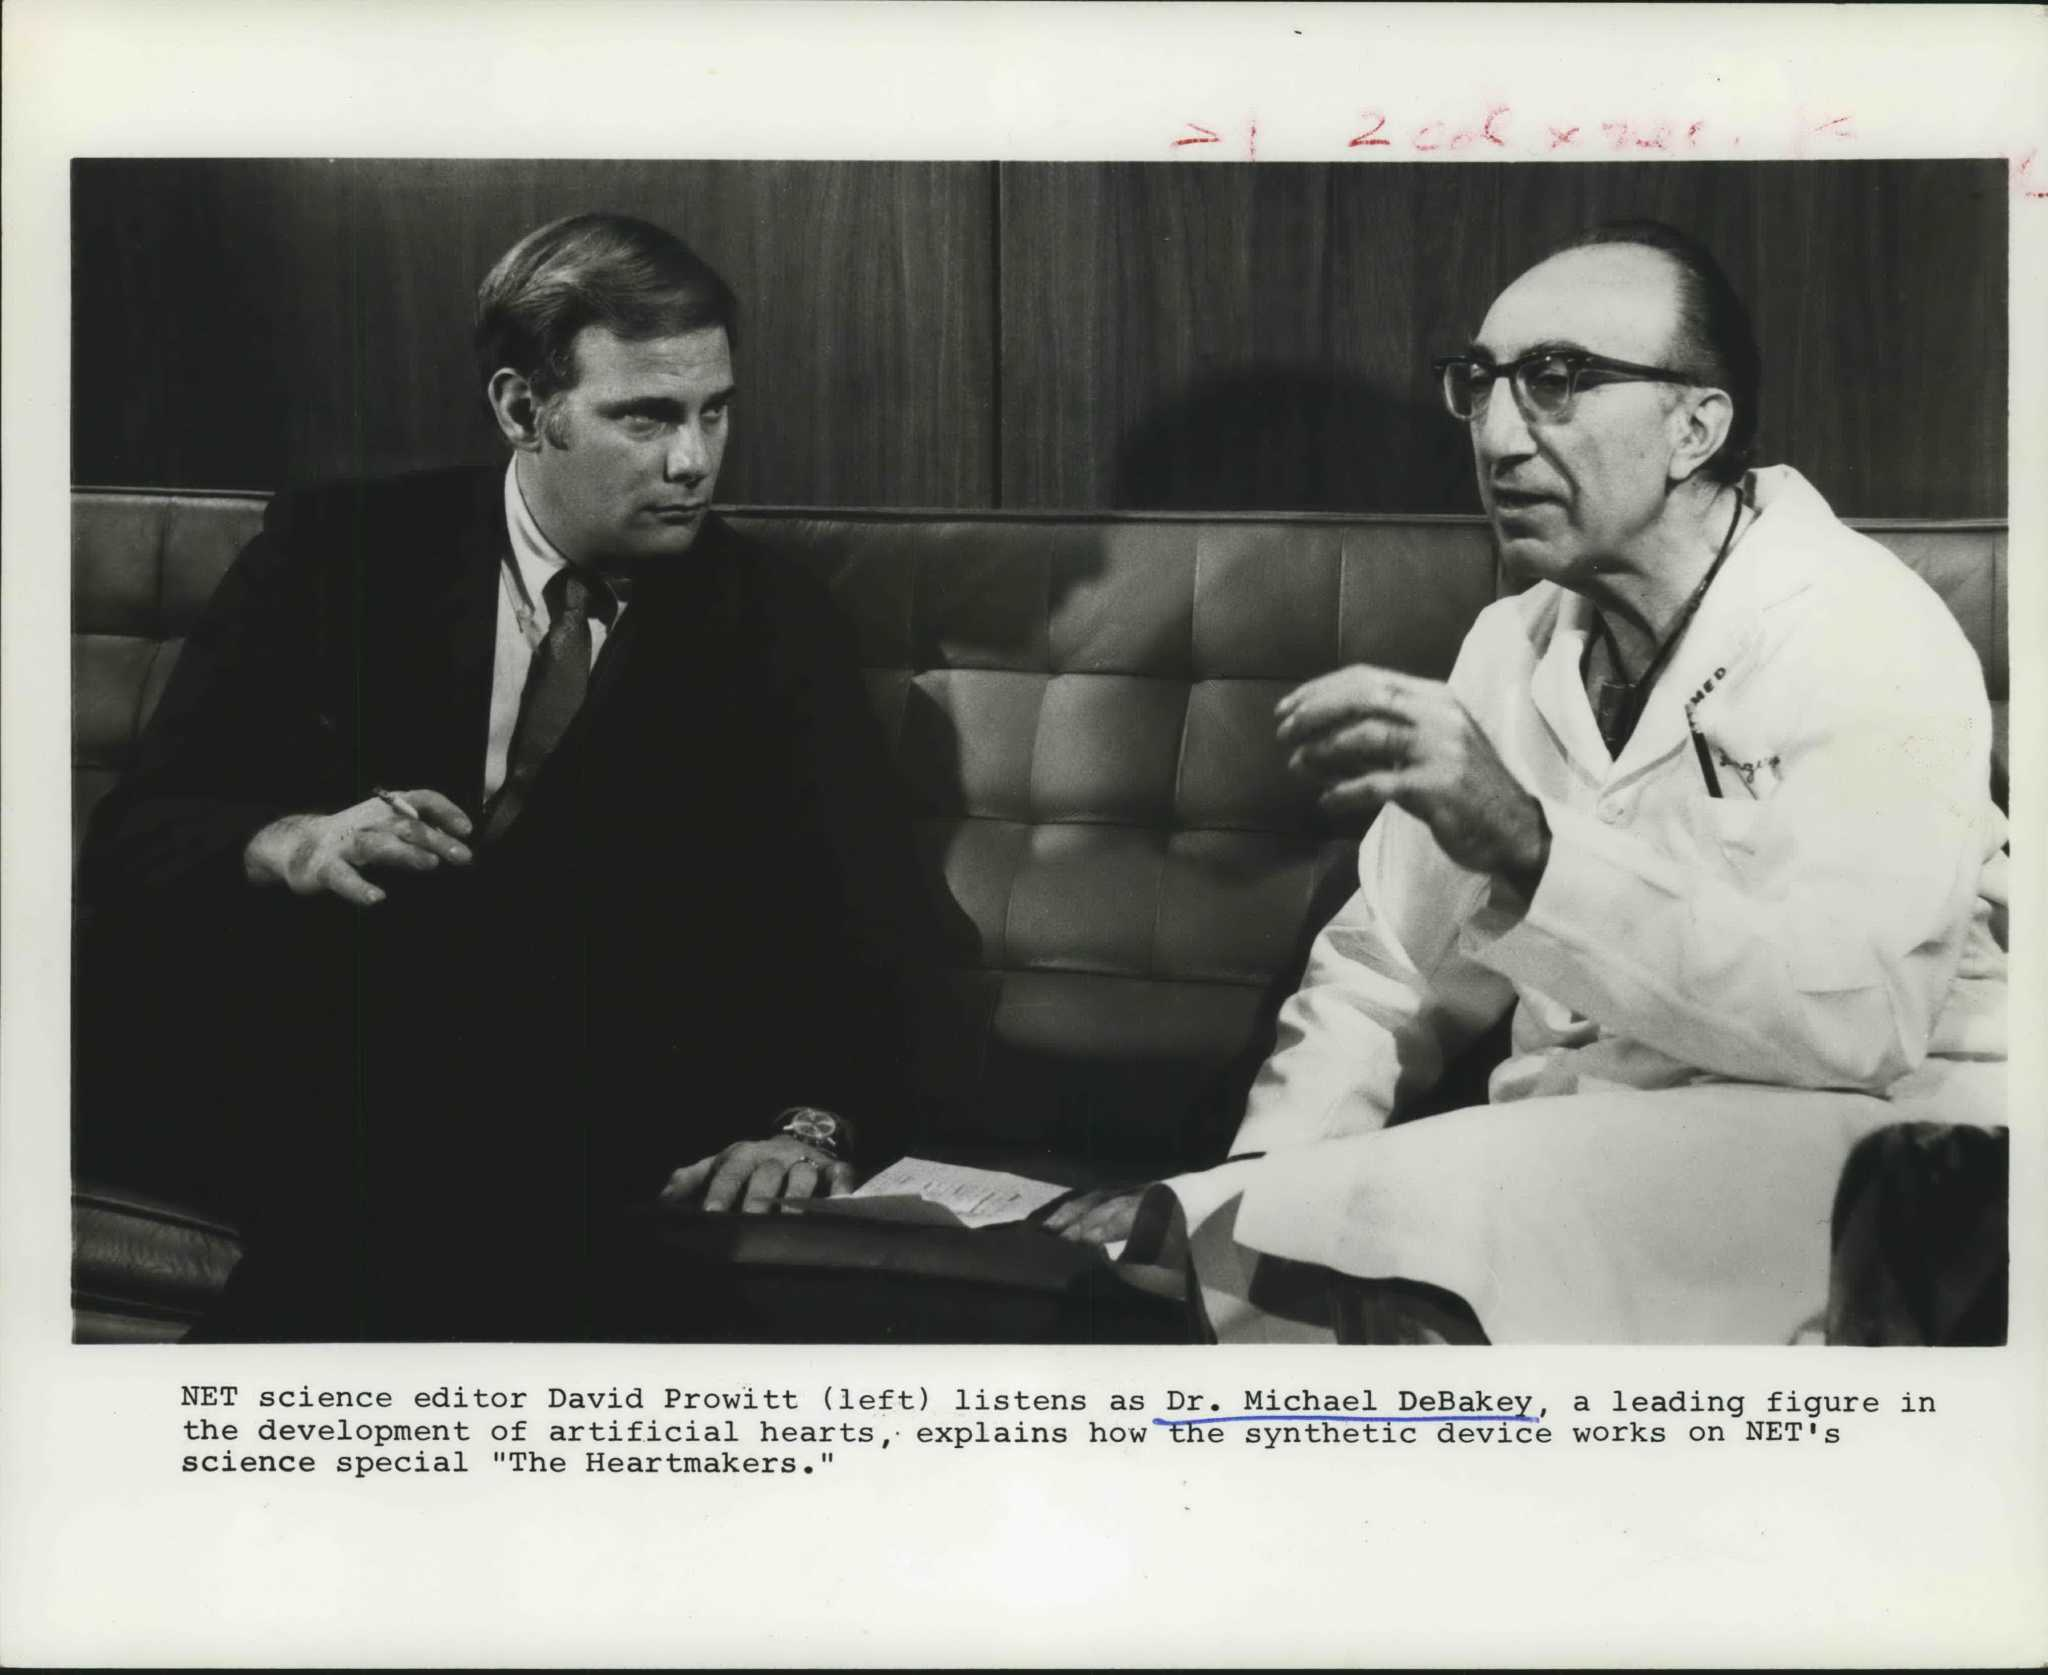 Houston healthcare in 1945 was 'mediocre.' The rivalry between DeBakey and Cooley changed it forever